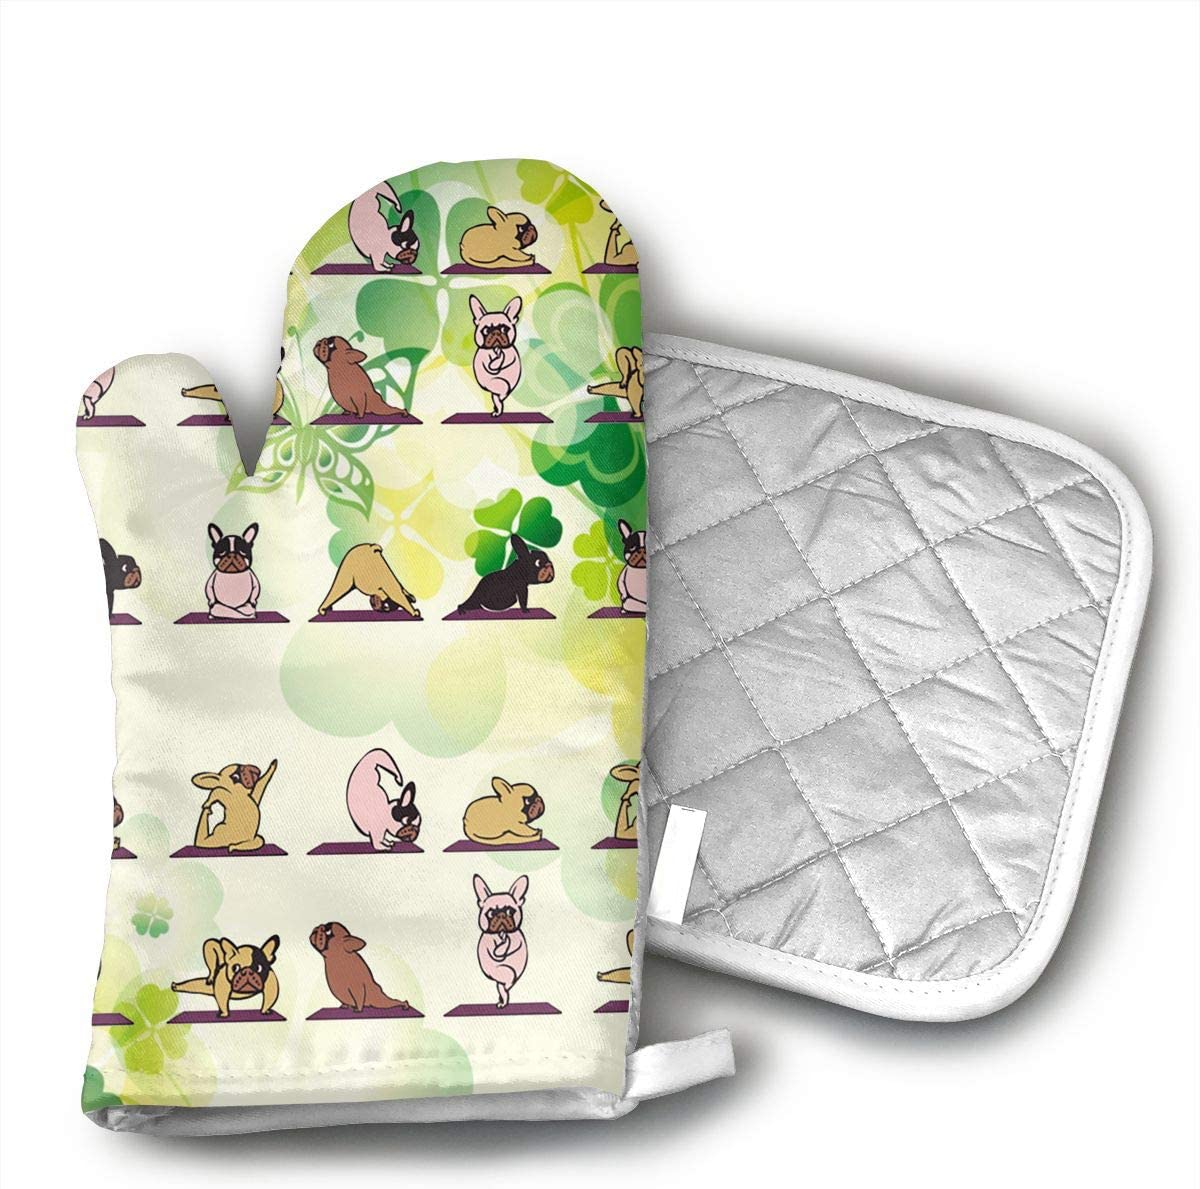 LALABULU Oven Mitts Frenchie Yoga Non-Slip Silicone Oven Mitts, Extra Long Kitchen Mitts, Heat Resistant to 500Fahrenheit Degrees Kitchen Oven Gloves